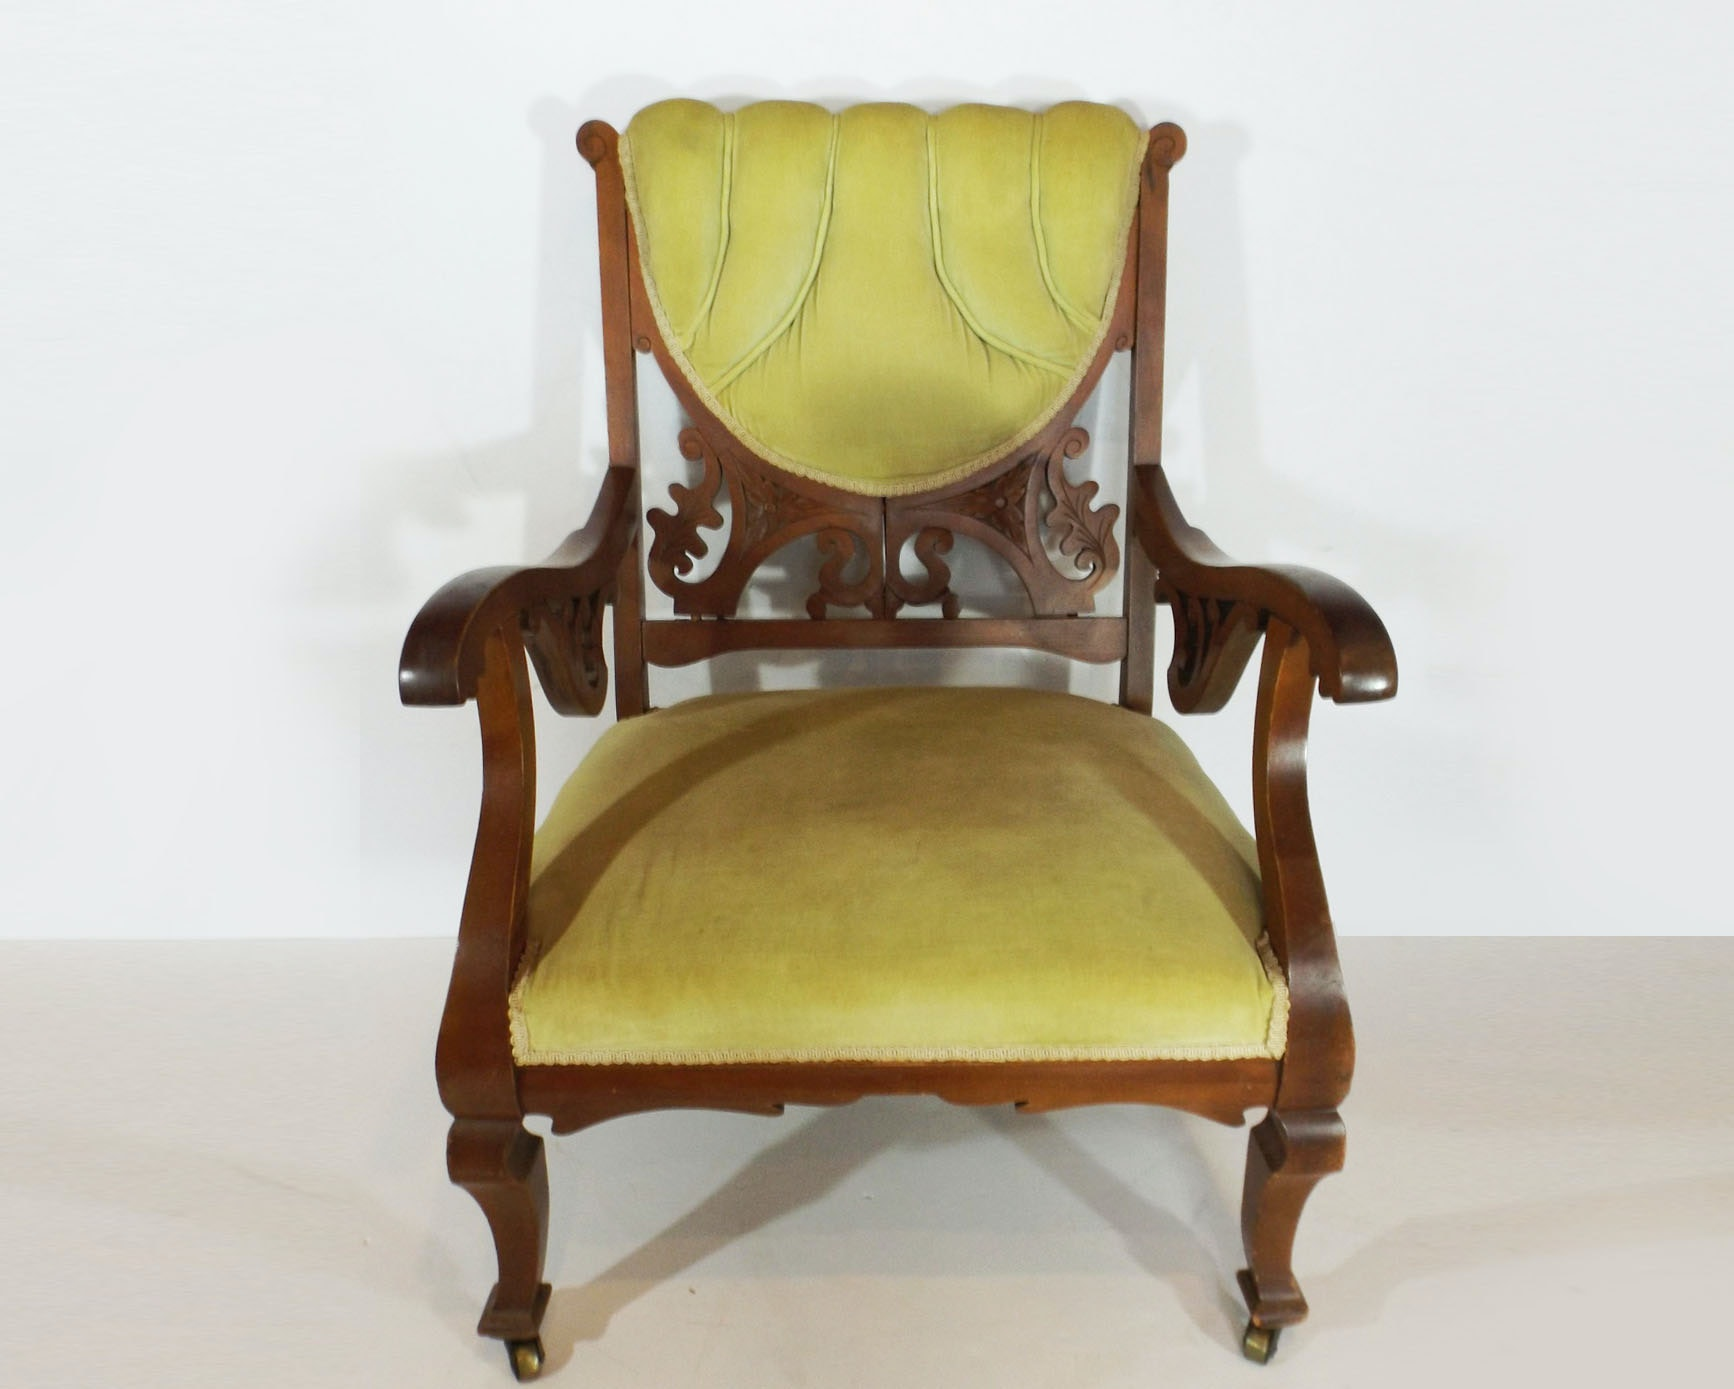 Victorian Parlor Chair In Cherry Wood